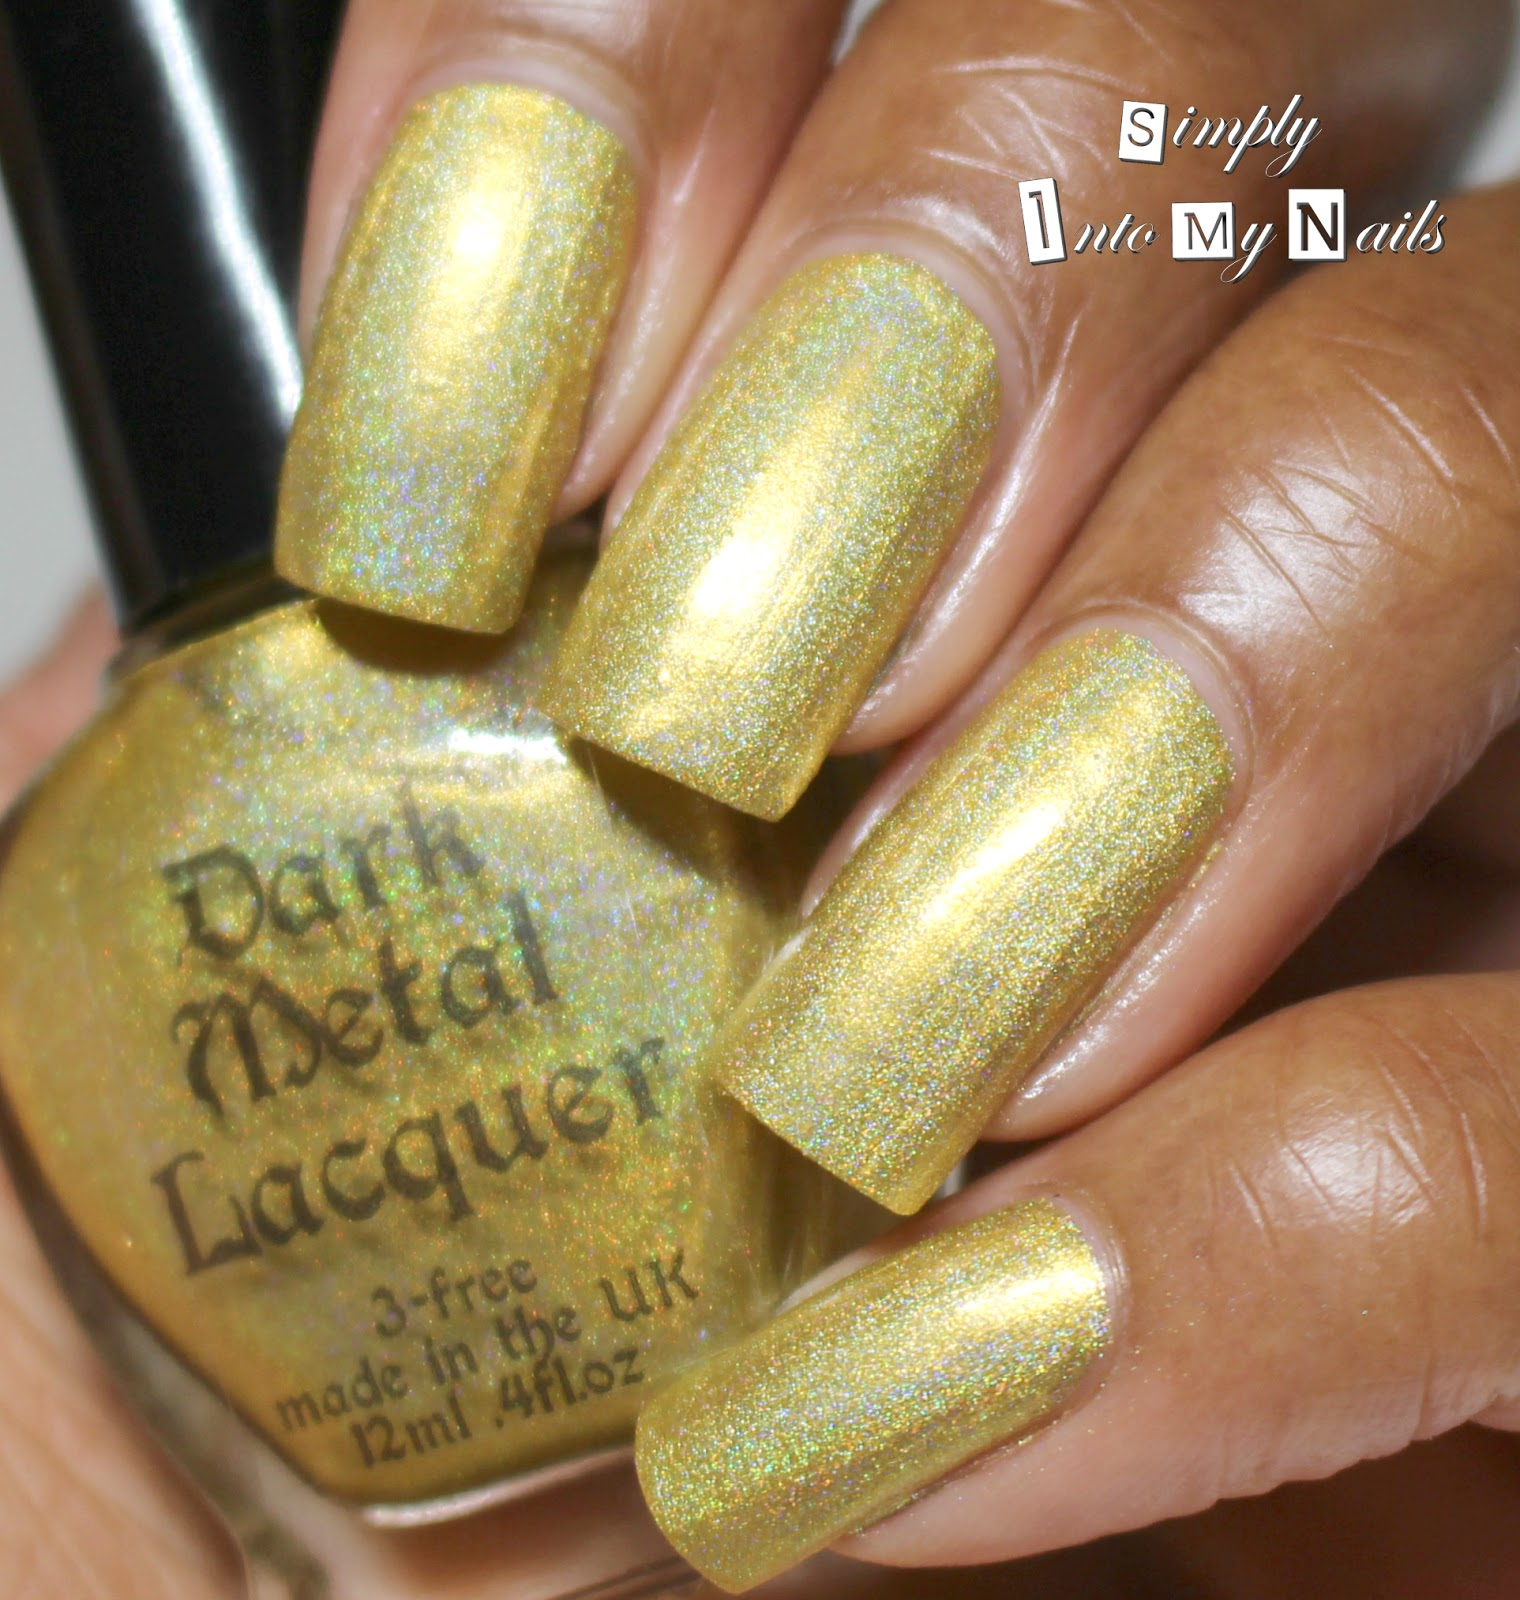 Dark Metal Lacquer Review   Simply Into My NAILS